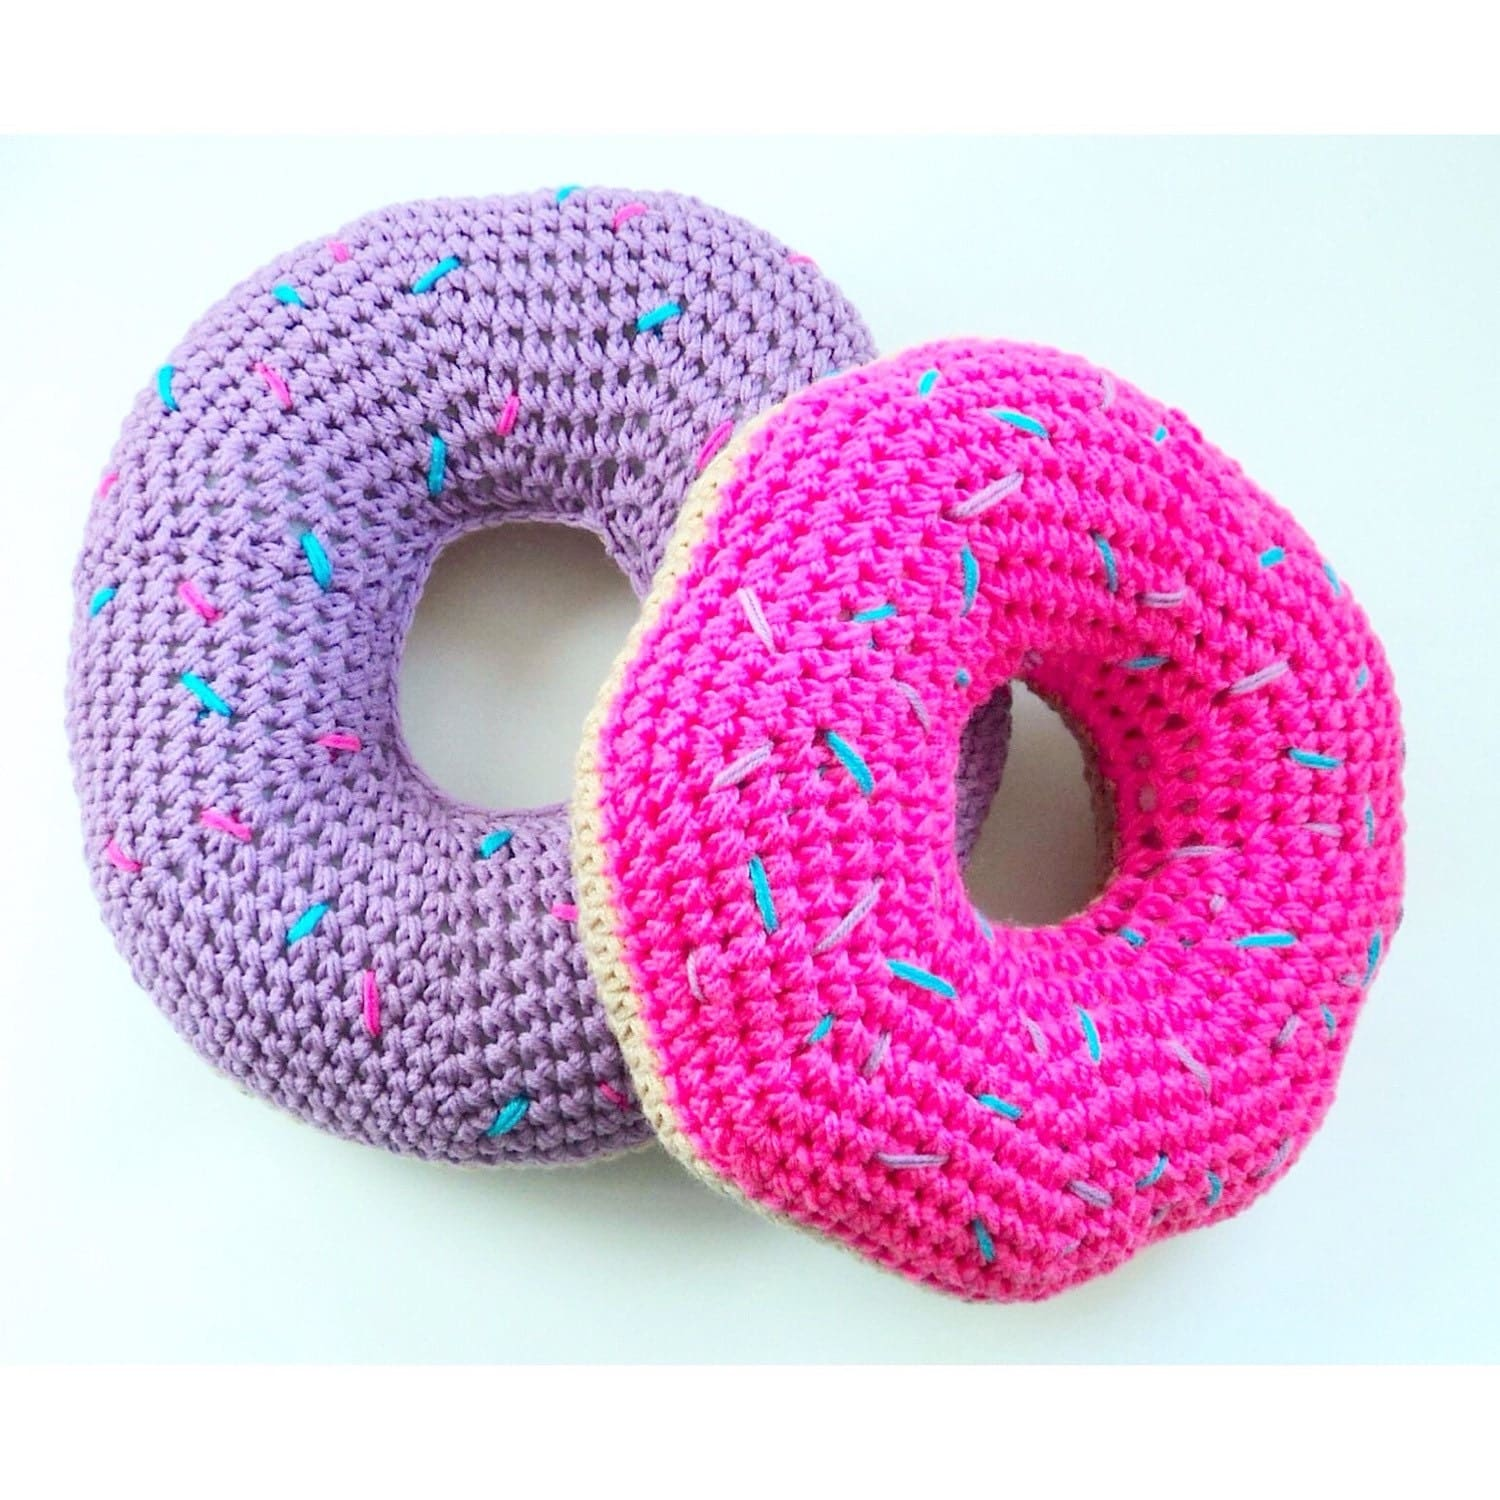 Crochet Donut Pillow : Donut Pillow Food Pillow Doughnut Pillow Foodie by OliviaLawsArt